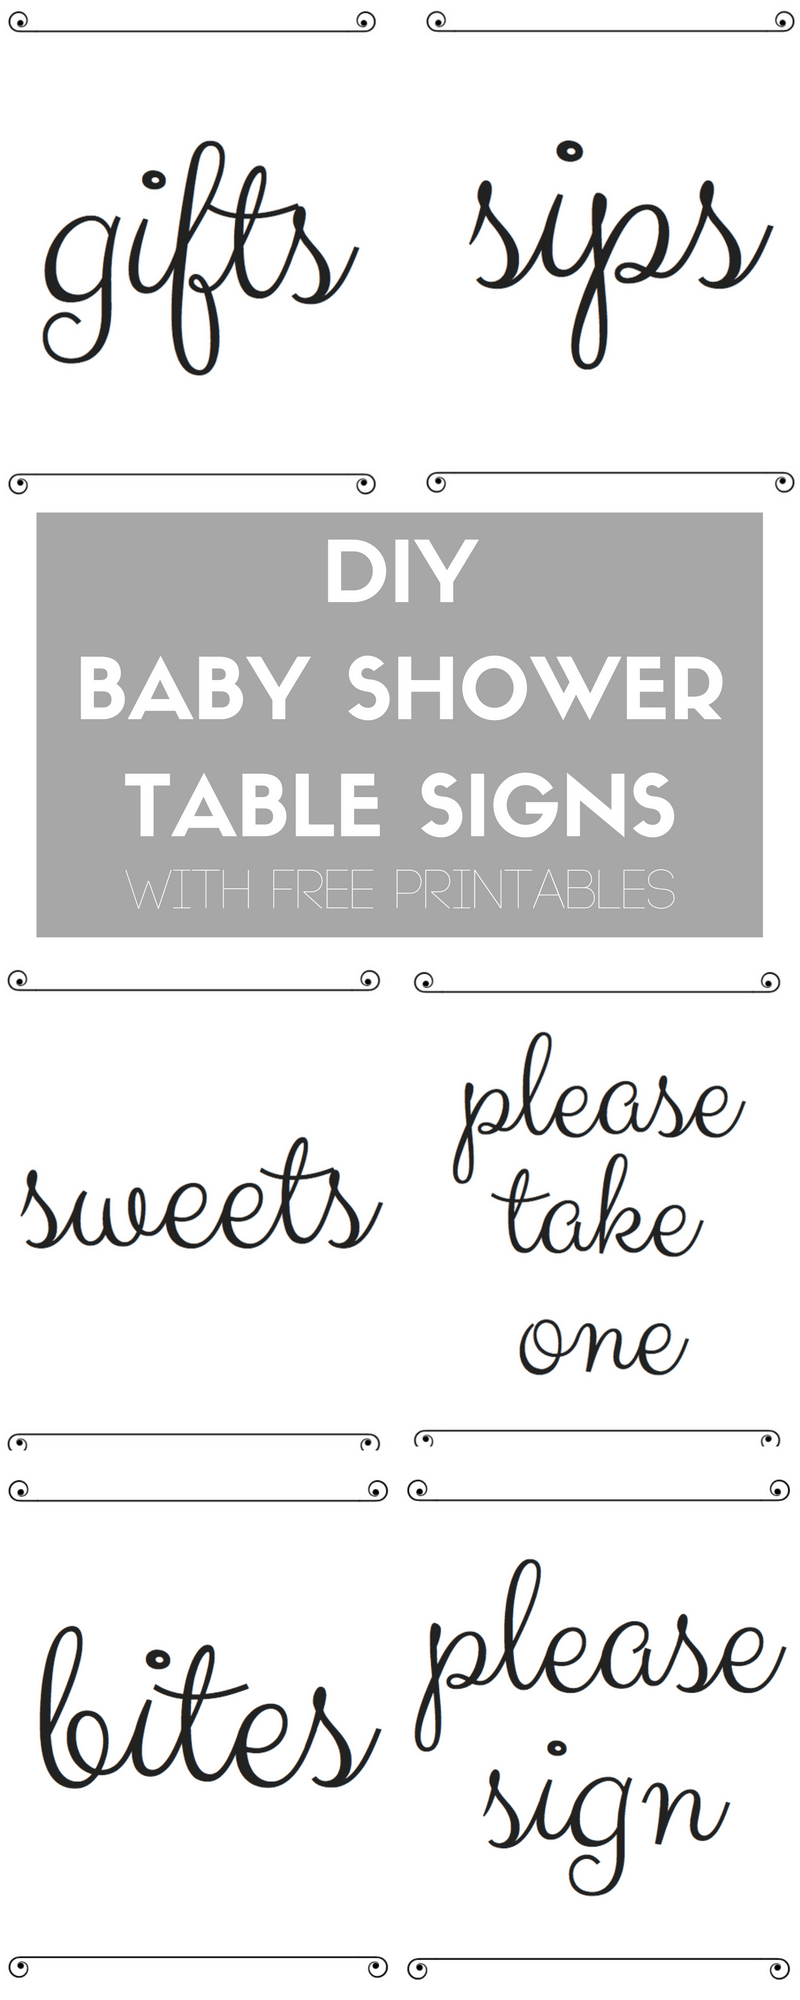 Lovely Diy Baby Shower Table Signs With Free Printables | Pinterest | Baby pertaining to Fresh Free Baby Shower Printables